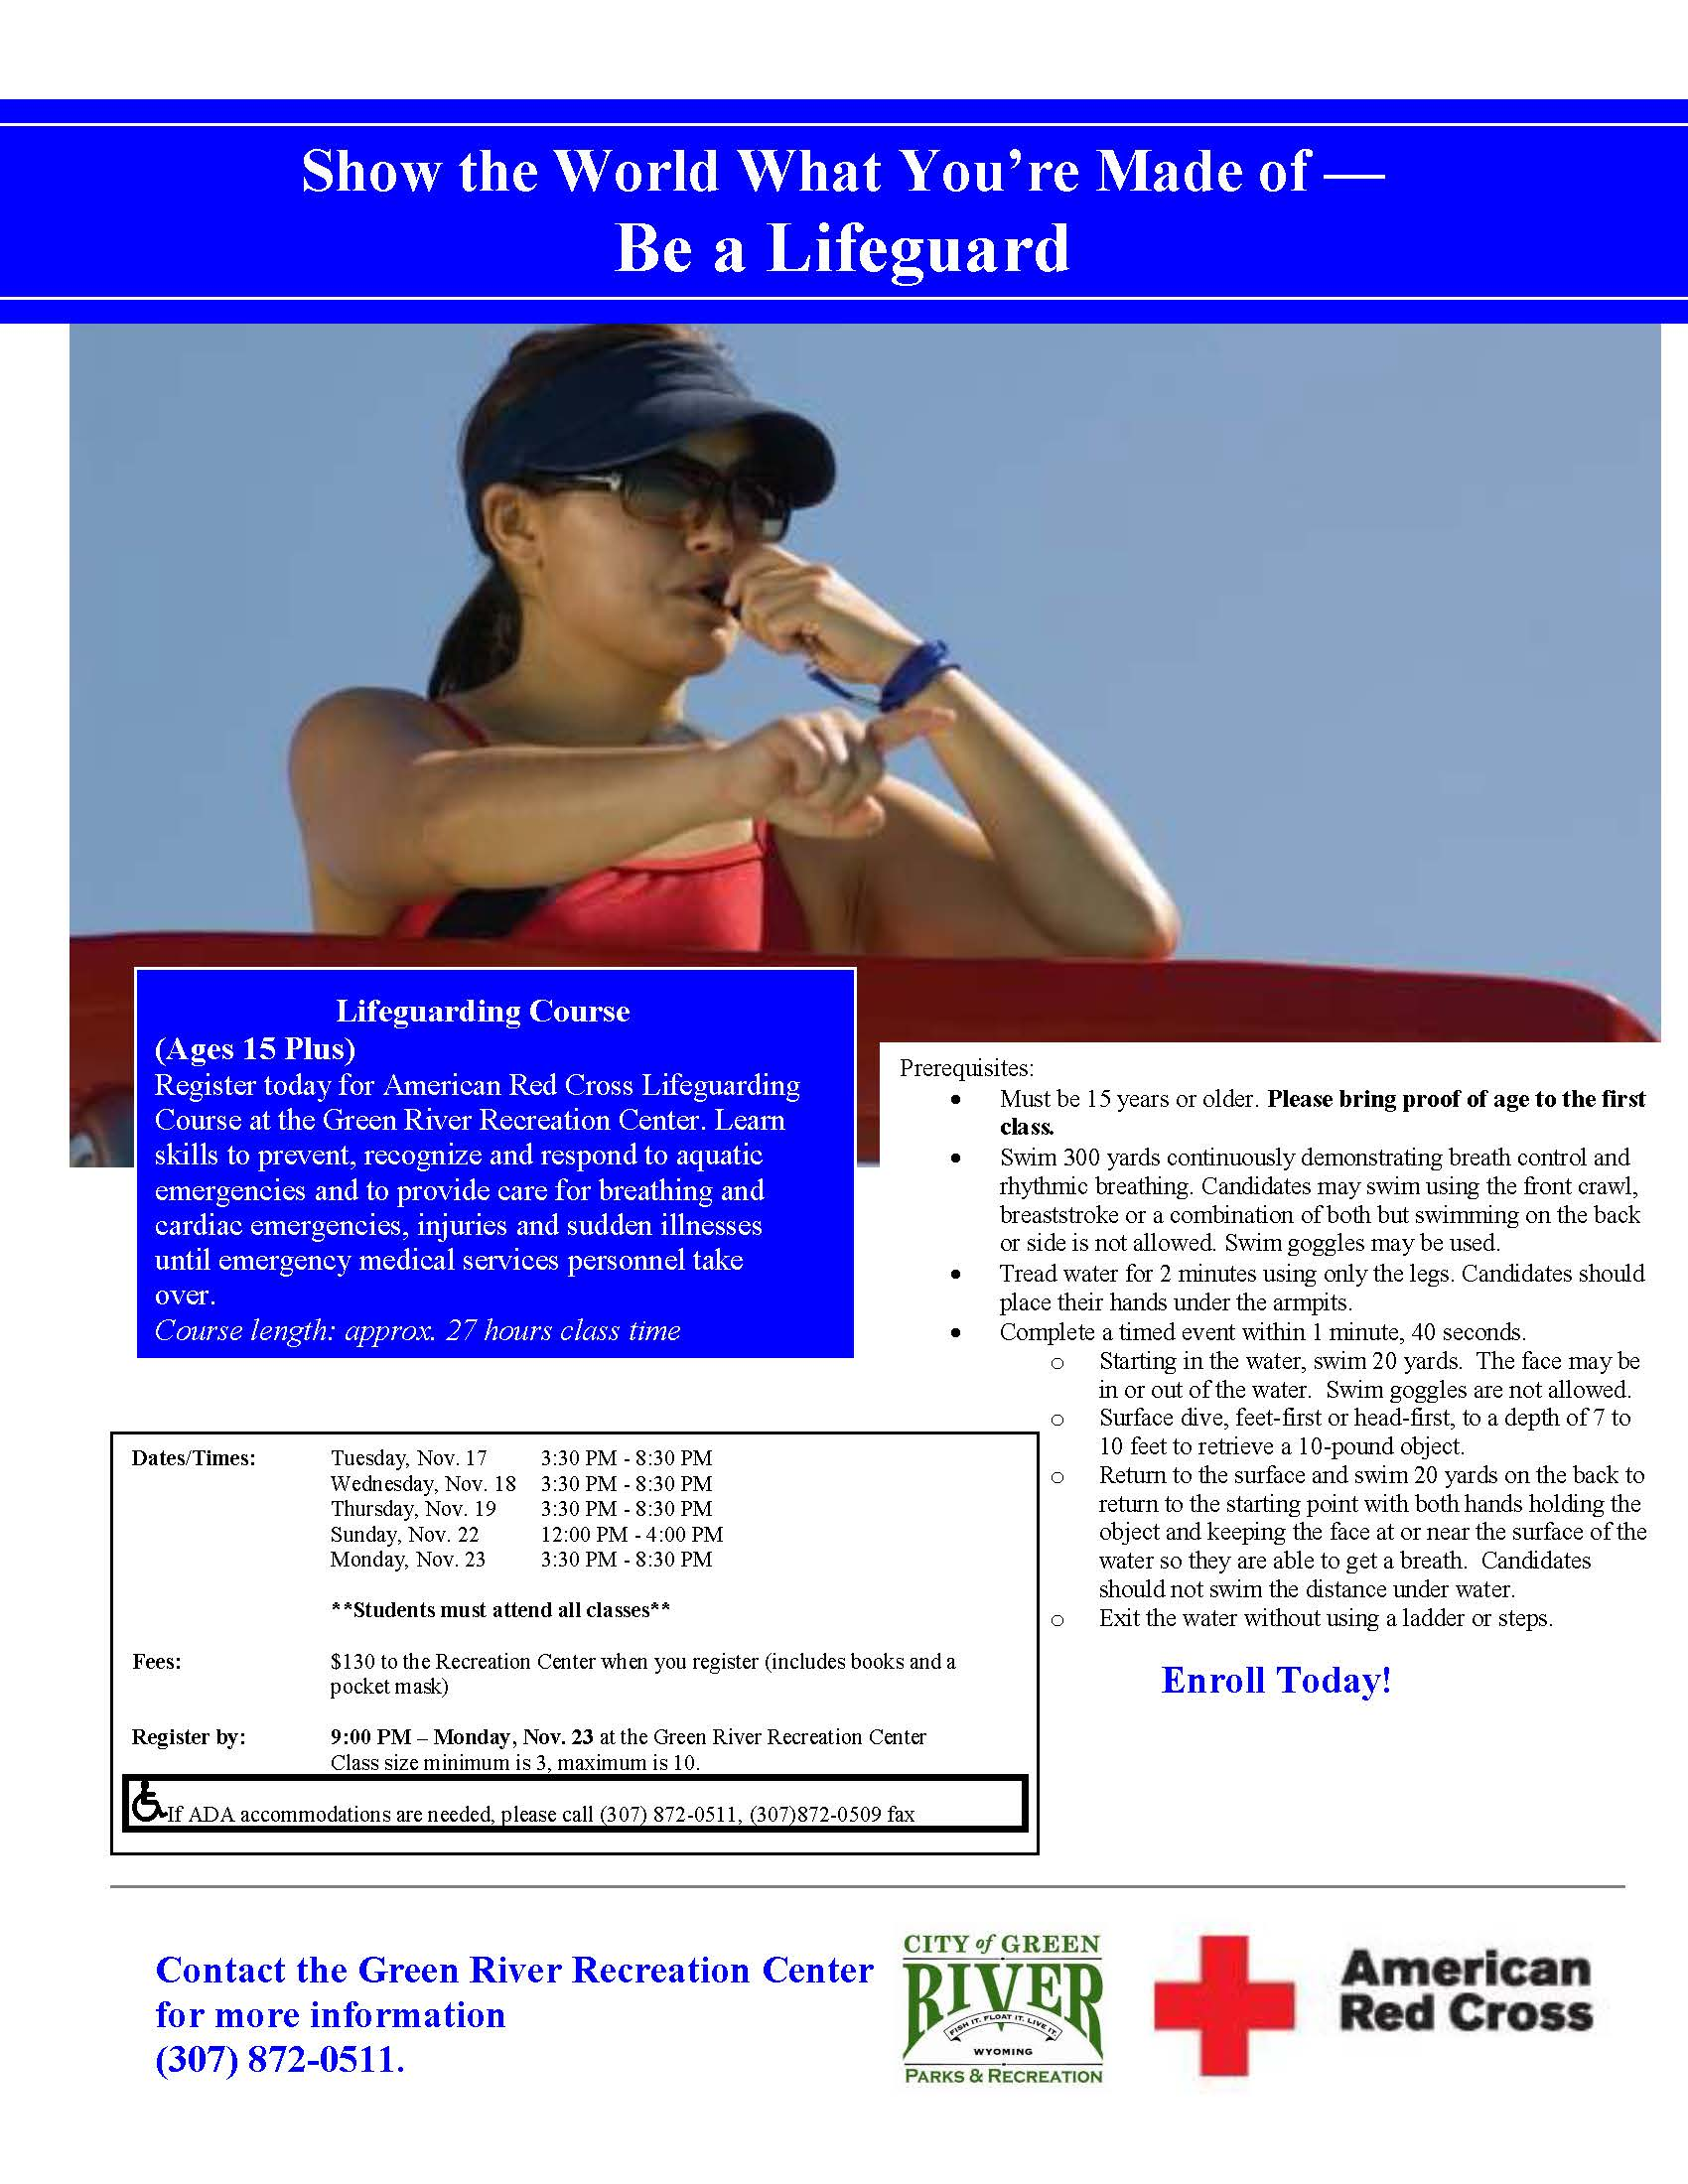 Lifeguarding Course flier 11.2020